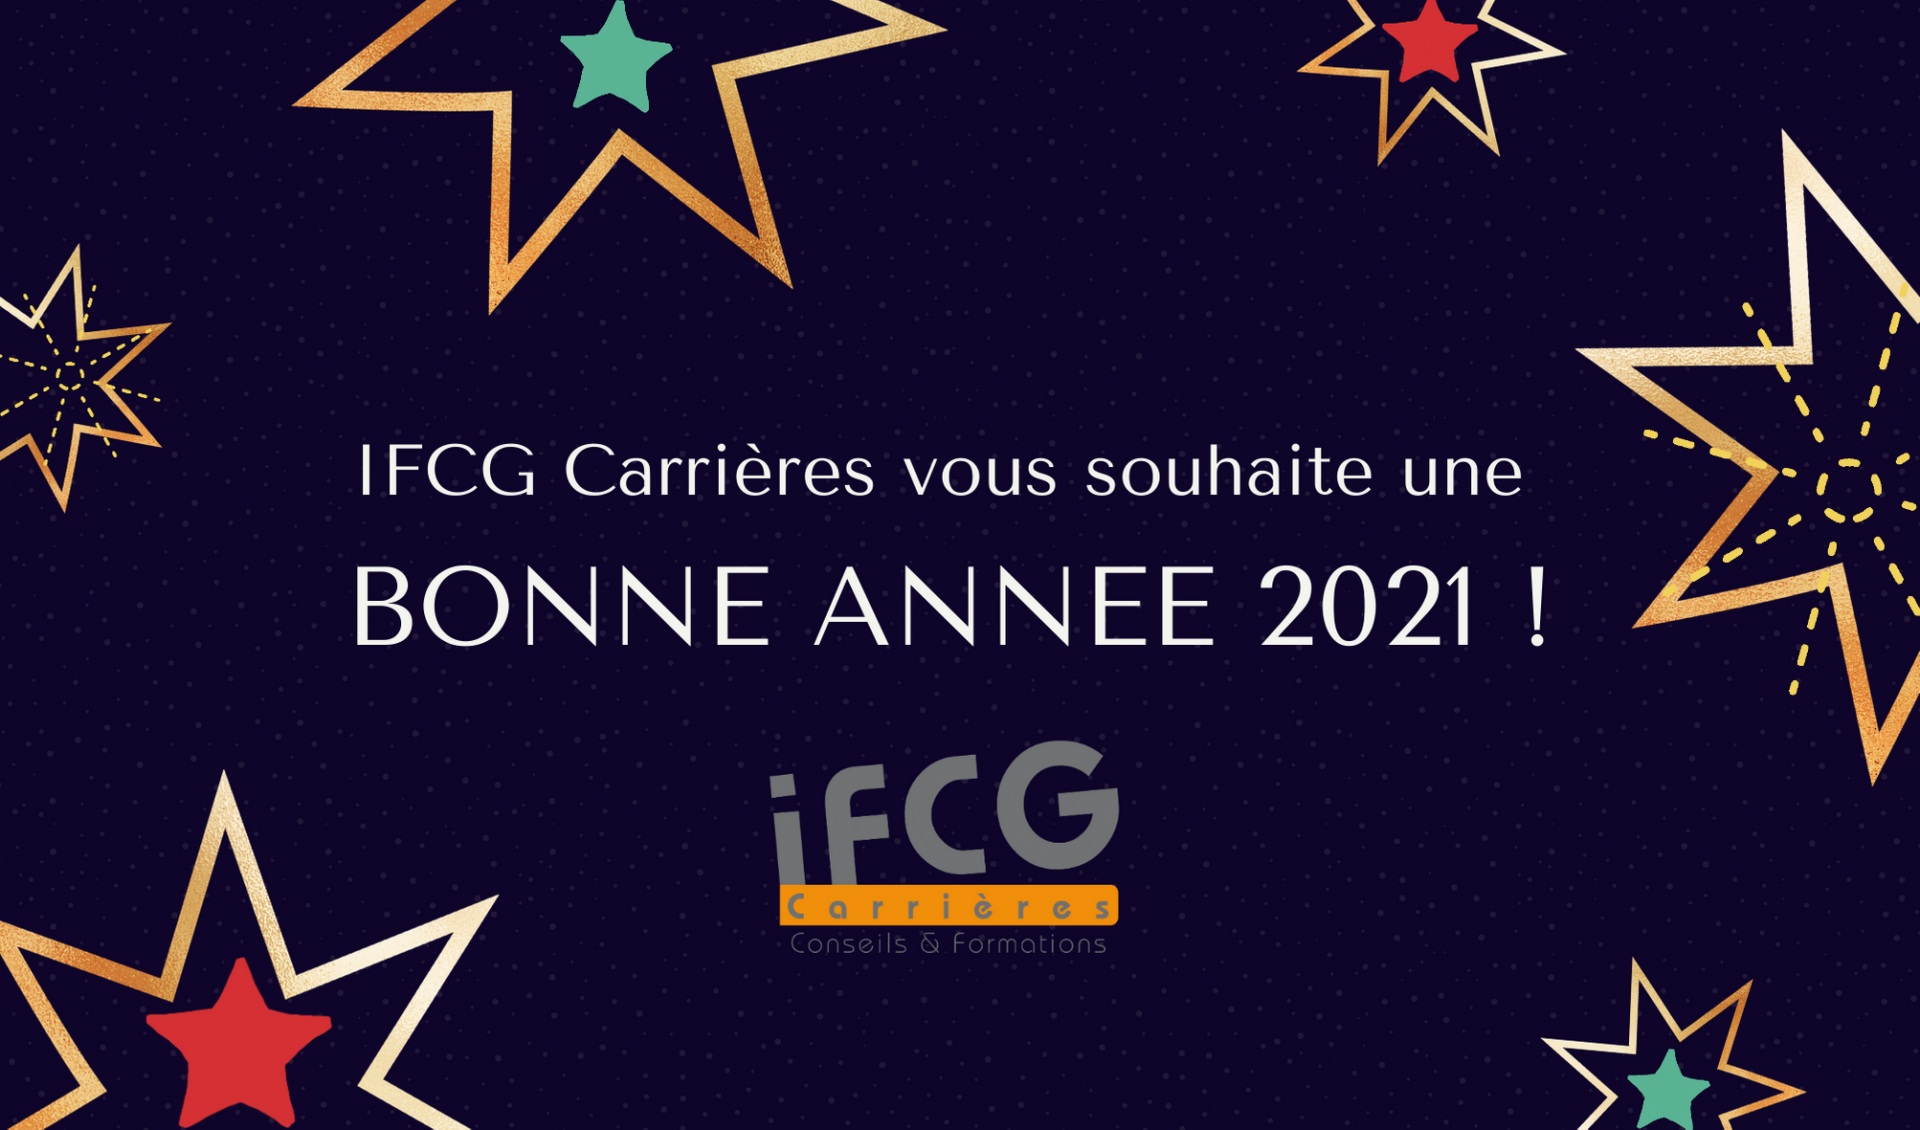 Bonneannee2021 ifcg carrie res